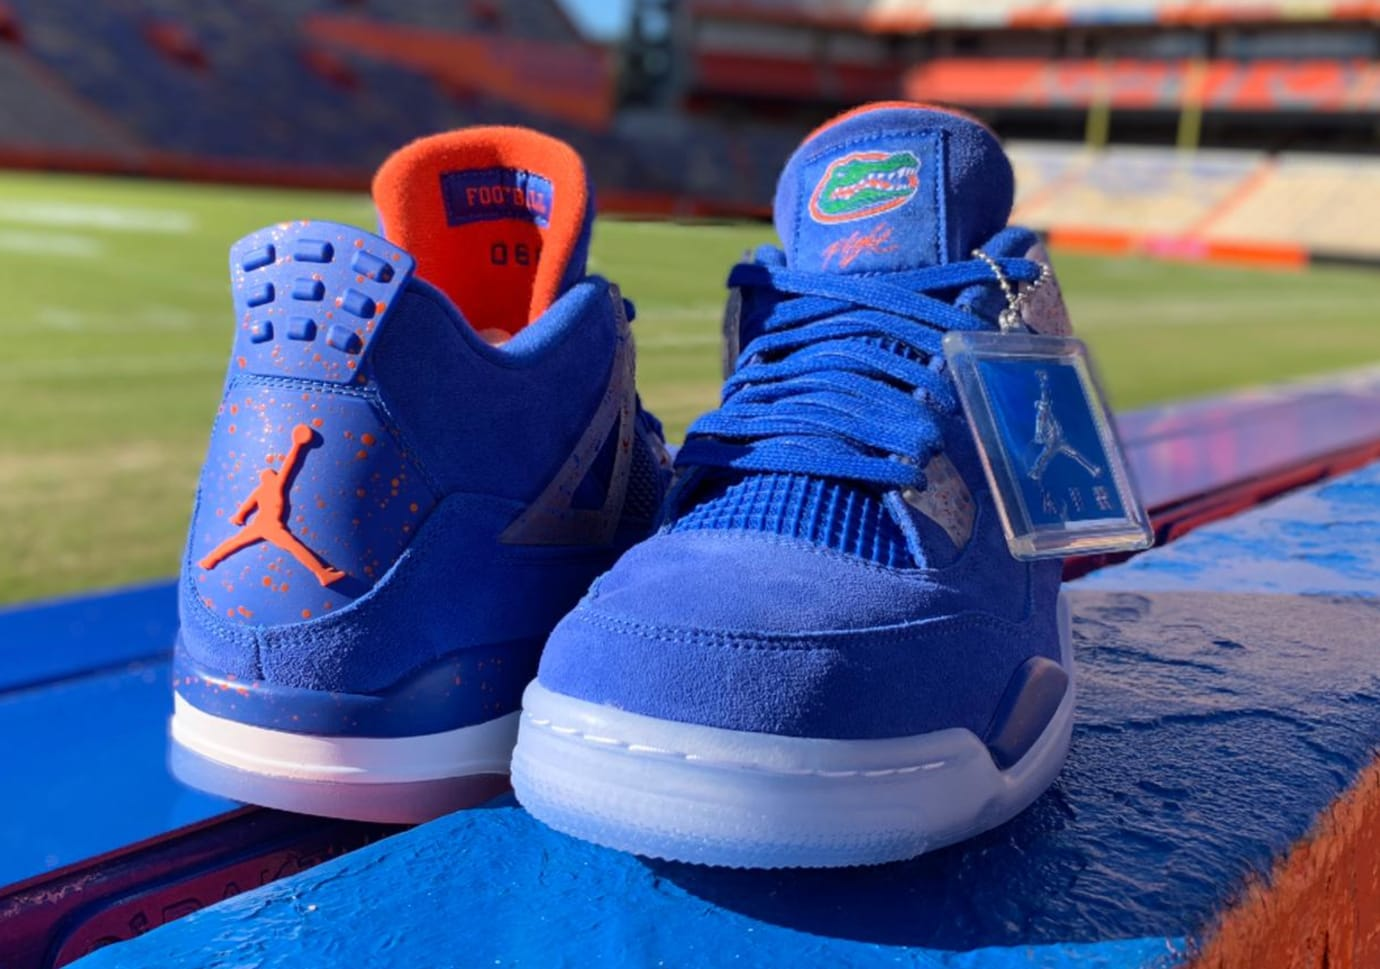 Air Jordan 4 'Florida Gators' PE (Front and Heel)